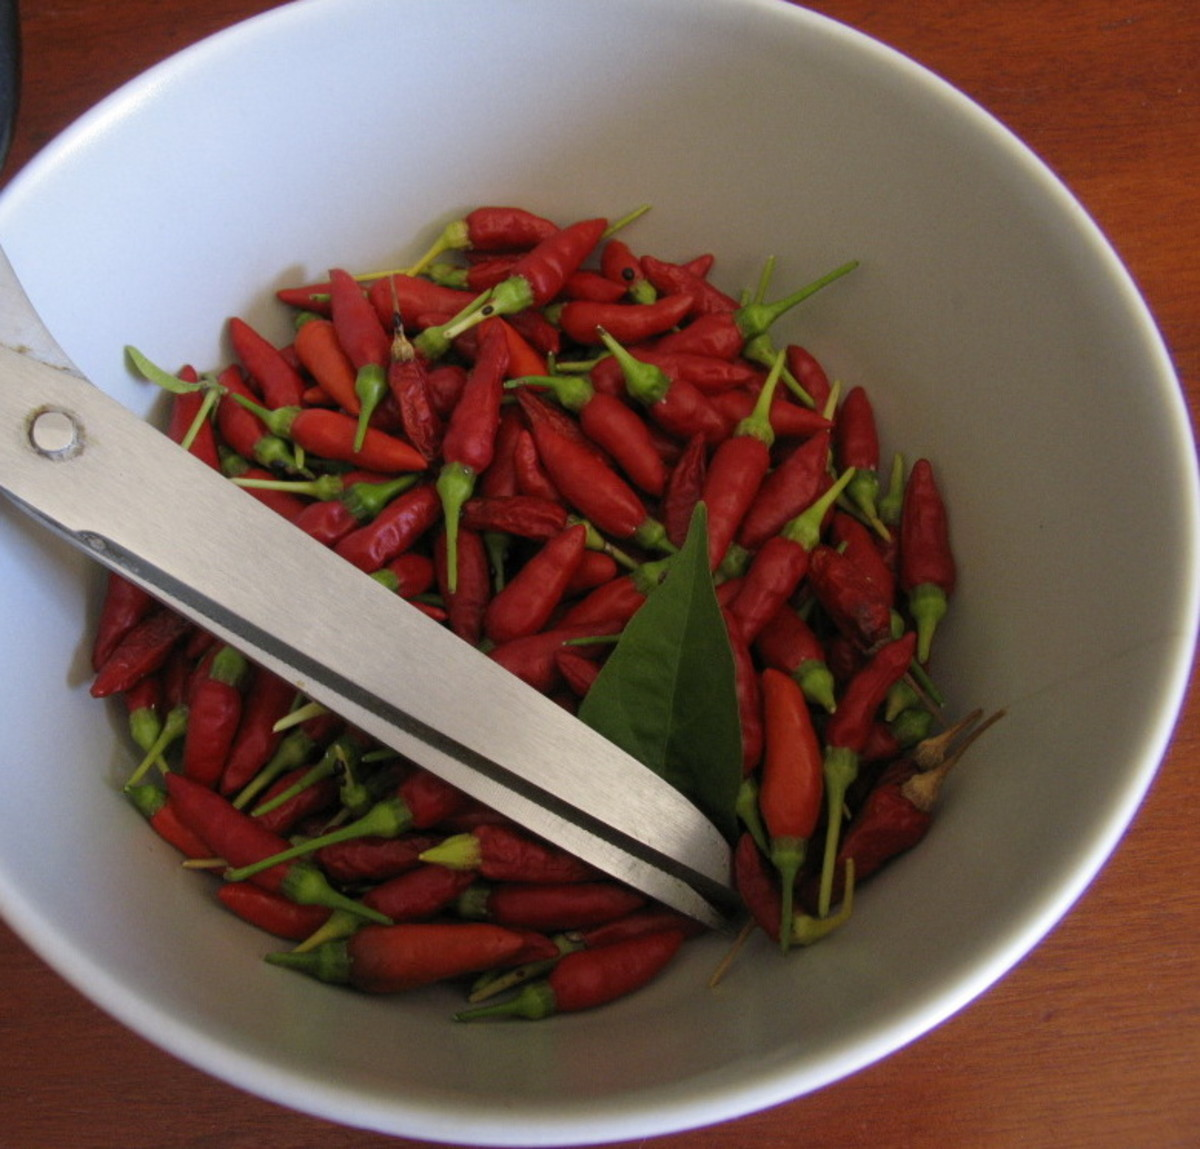 Hot chilies